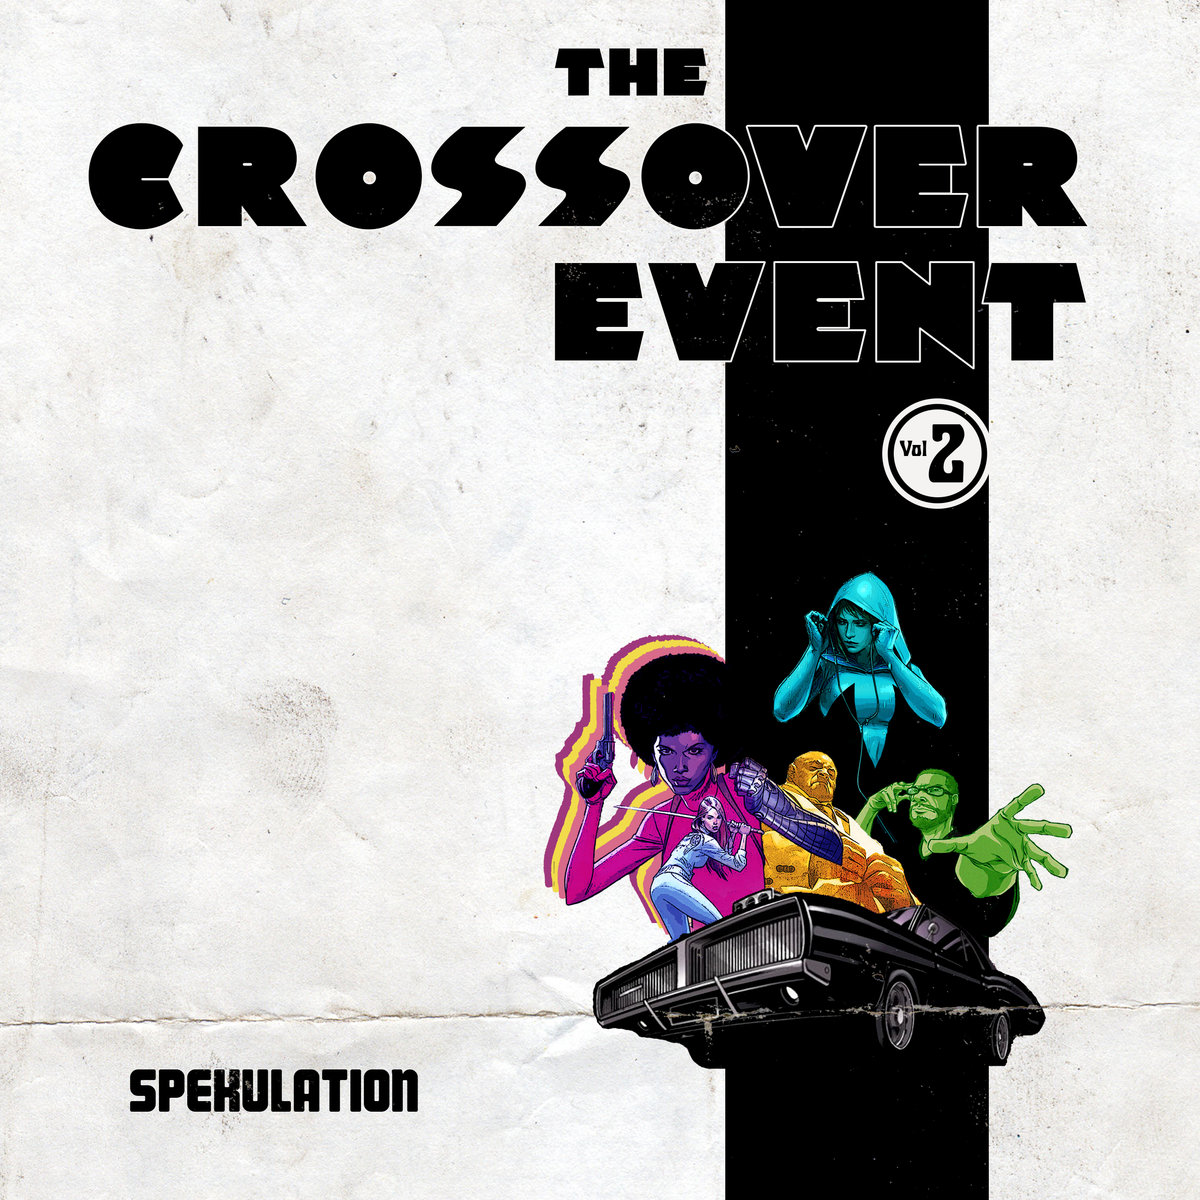 The Crossover Event Vol. 2